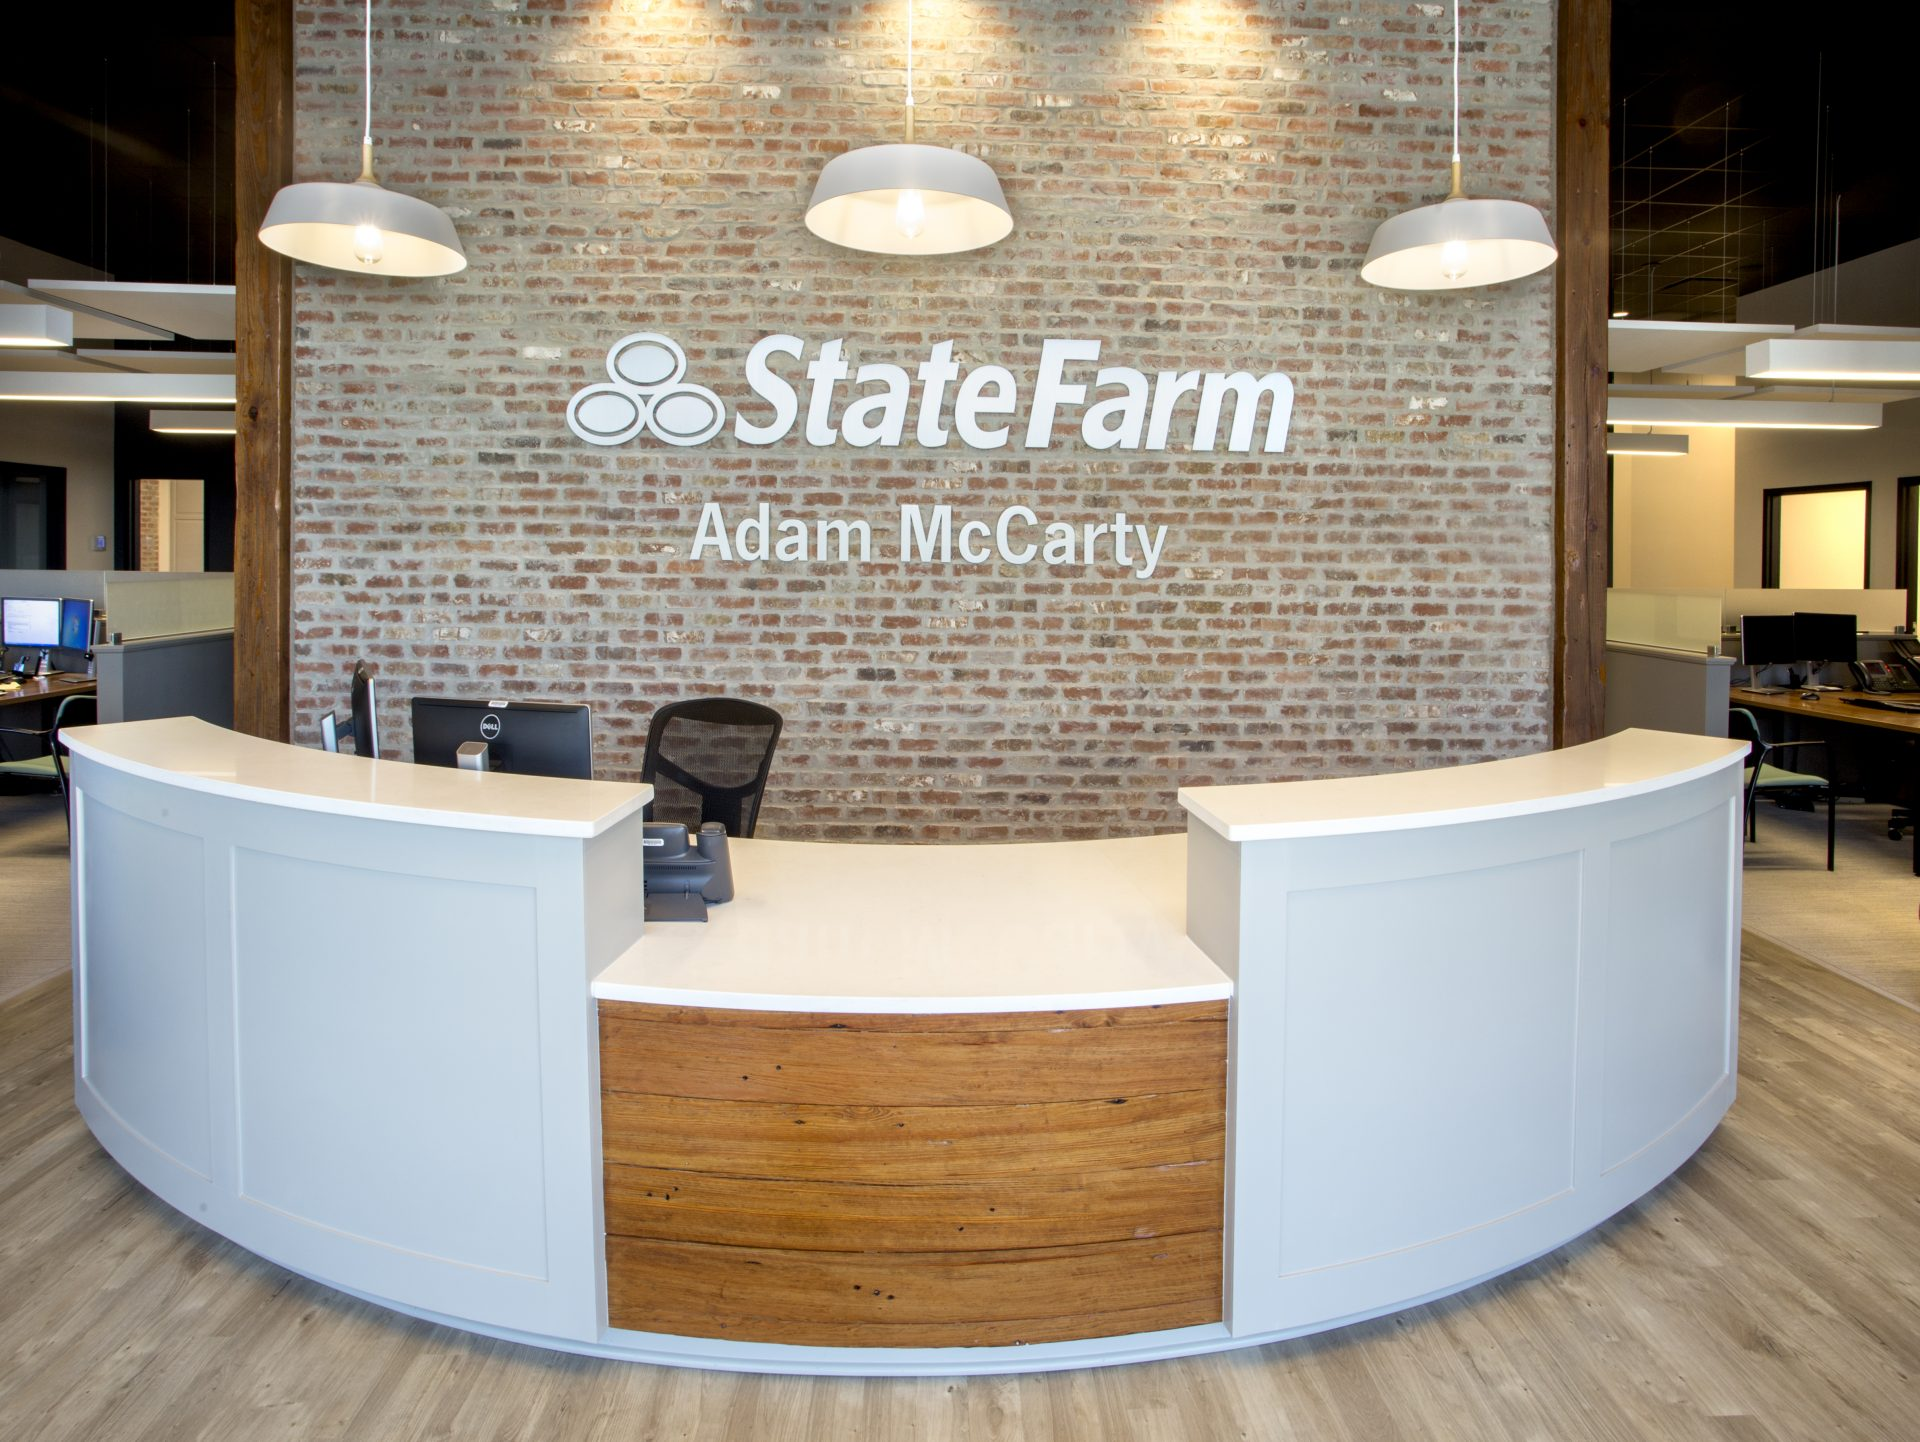 Adam McCarty State Farm front desk. Exposed brick and wood details.